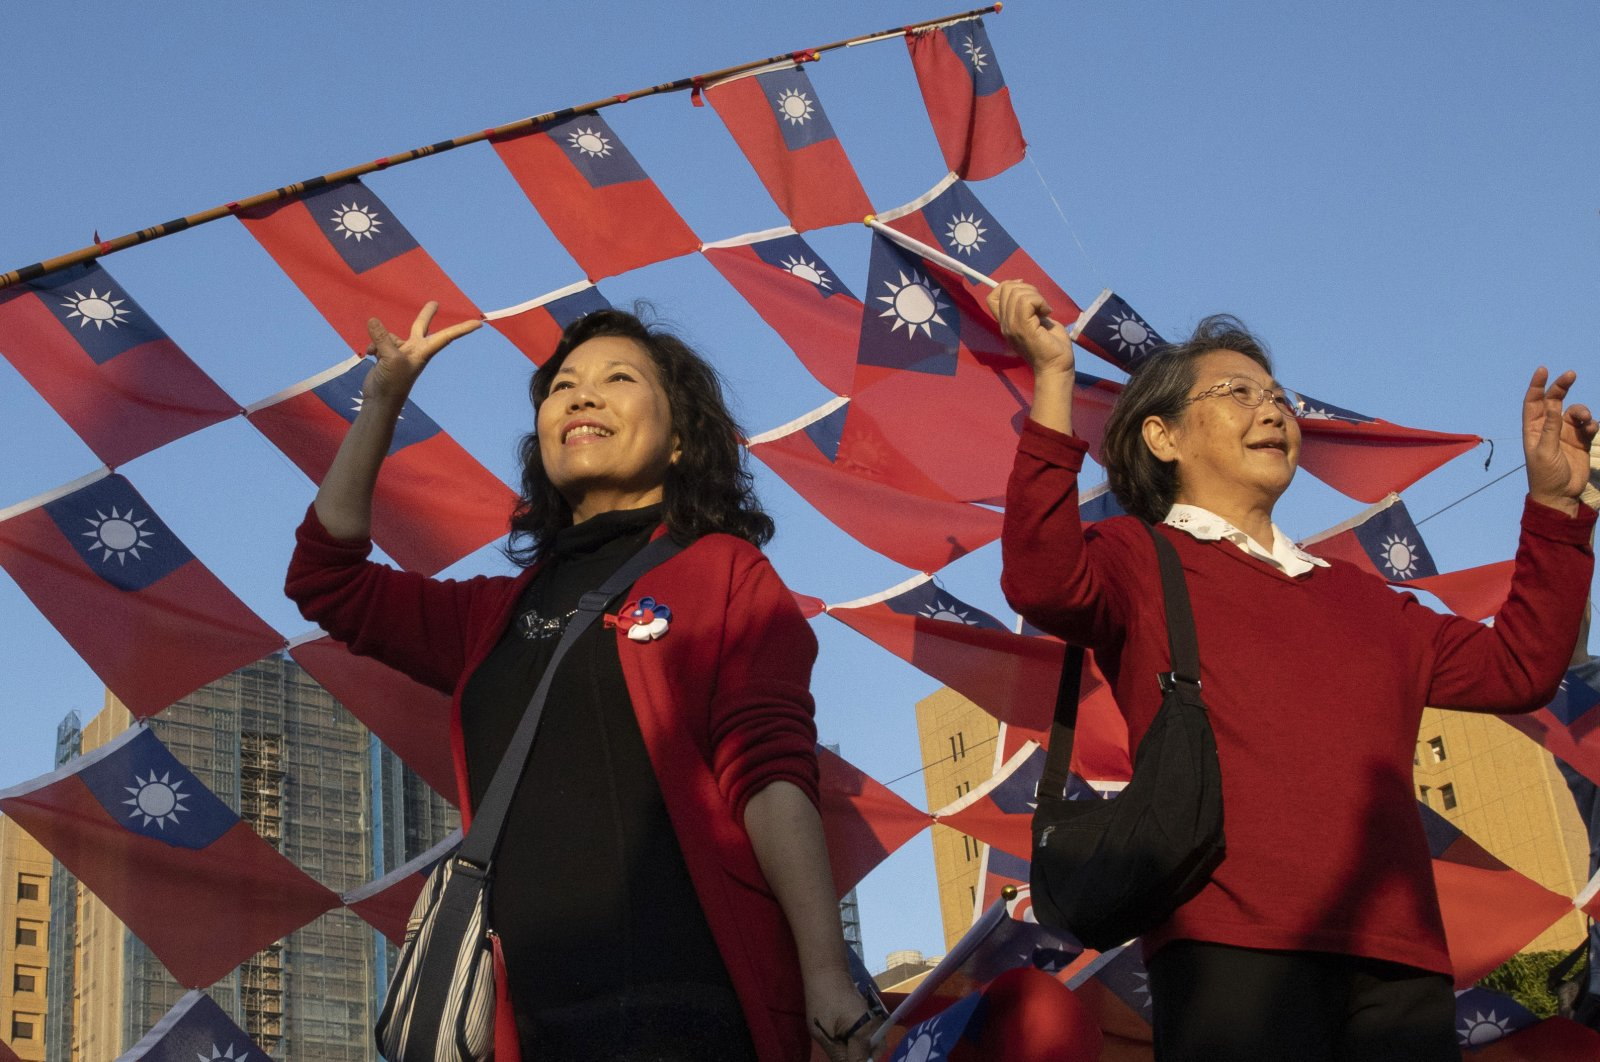 Supporters of the Nationalist, or KMT, party pose with the Taiwanese flag during a rally for the presidential election in Taipei, Taiwan, Jan. 9, 2020. (AP Photo)